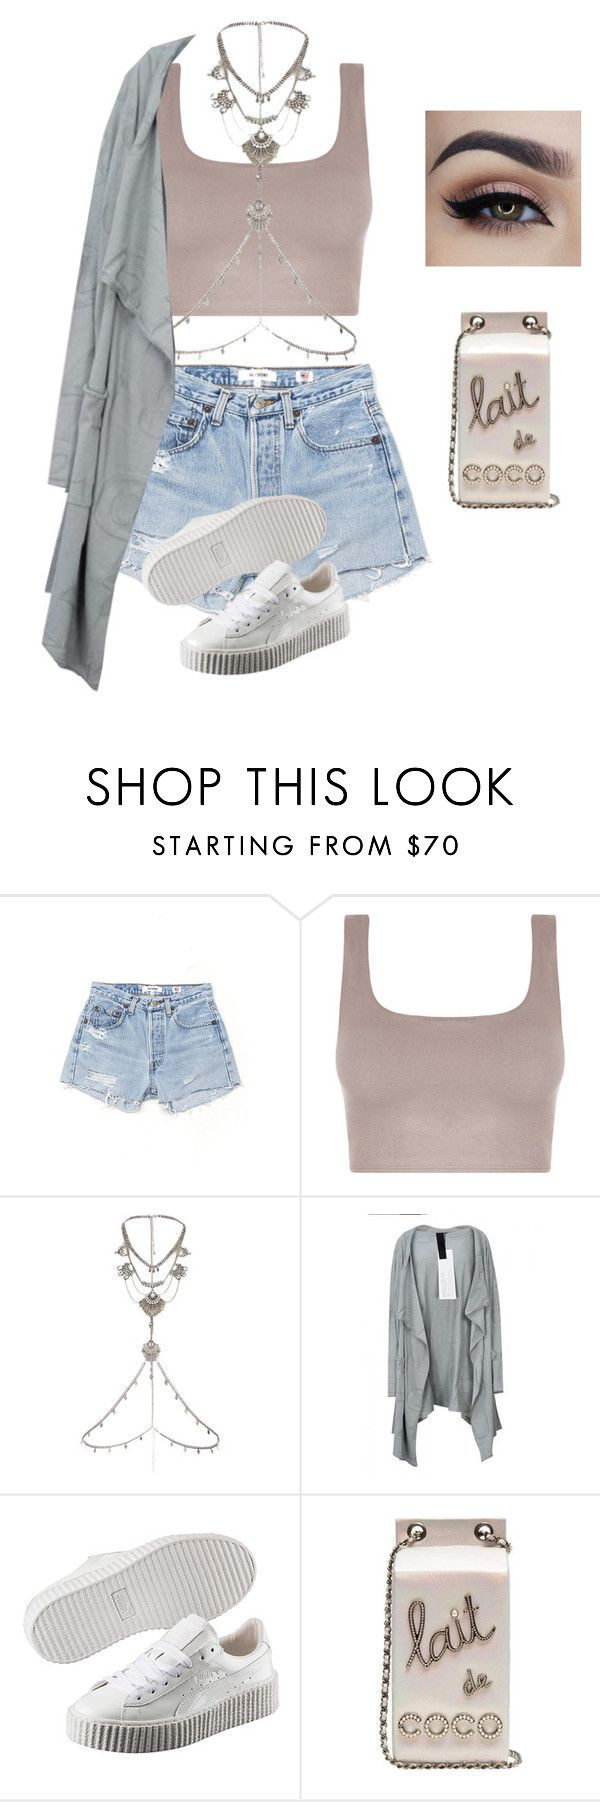 """""""Creepers x Chanel"""" by styleswavington ❤ liked on Polyvore featuring RE/DONE, River Island, Rundholz, Puma and puma"""